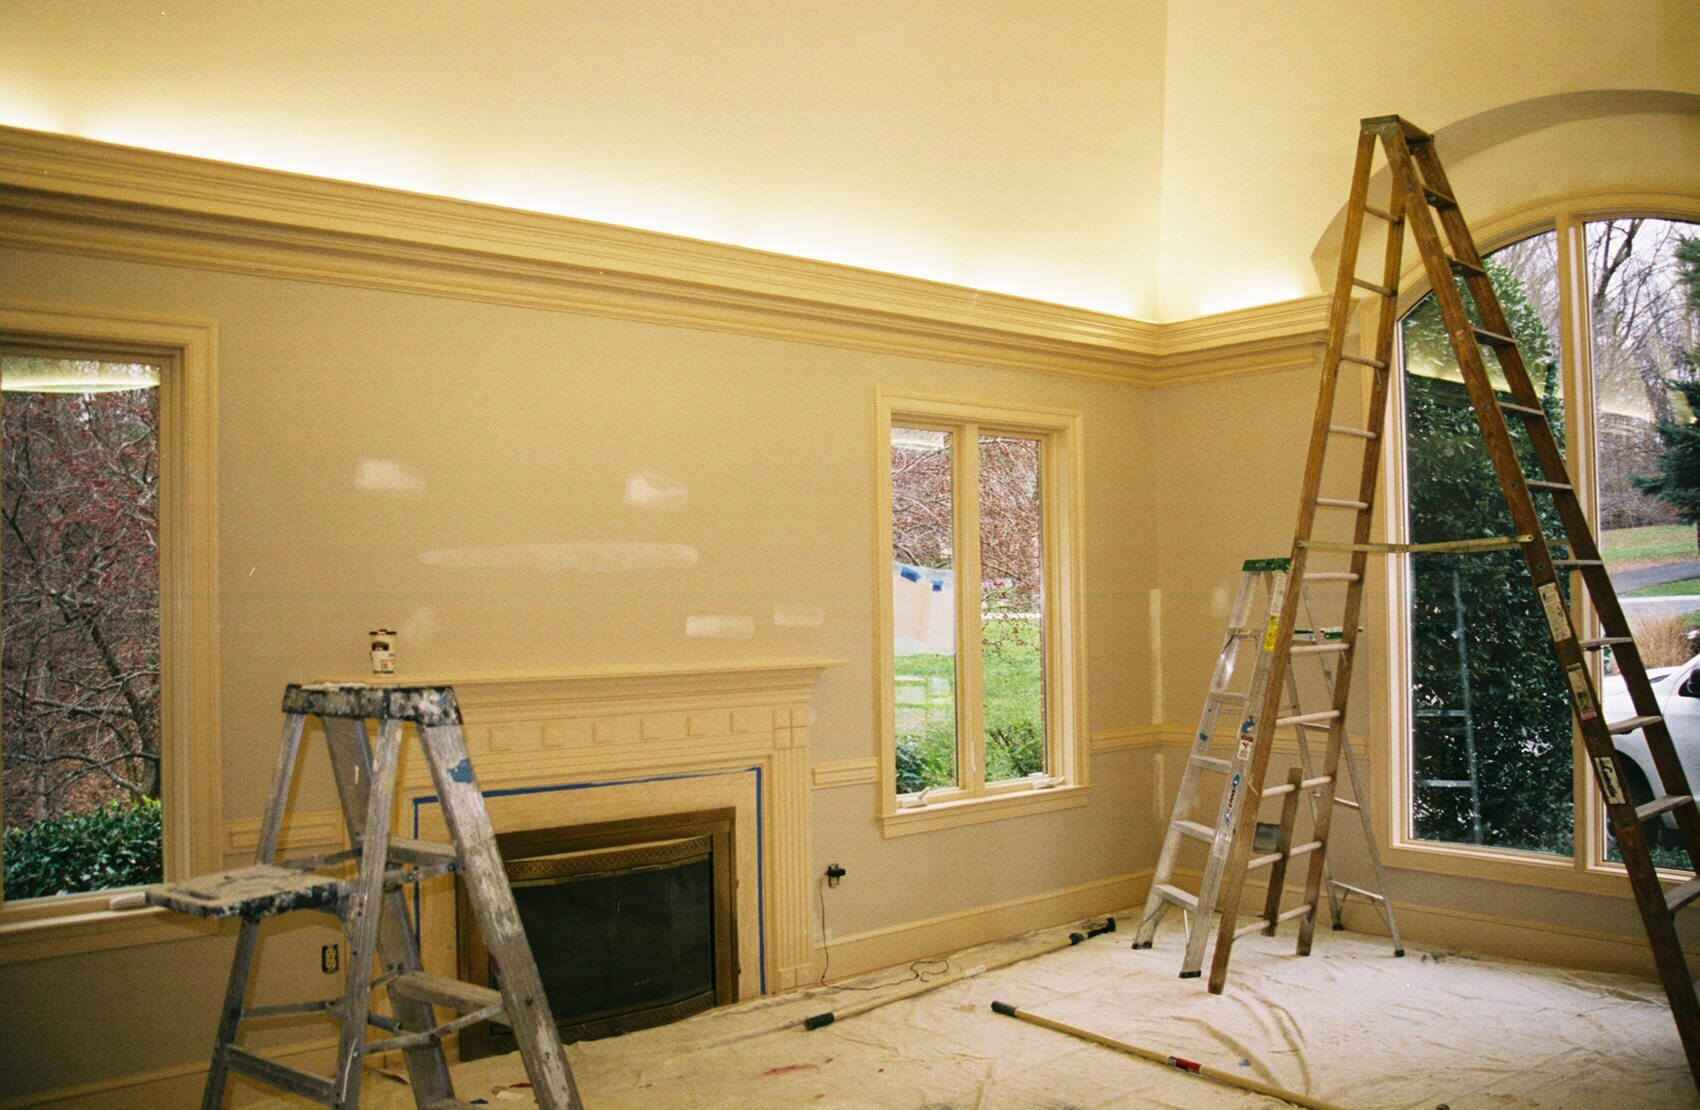 Interior of house being prepped for painting